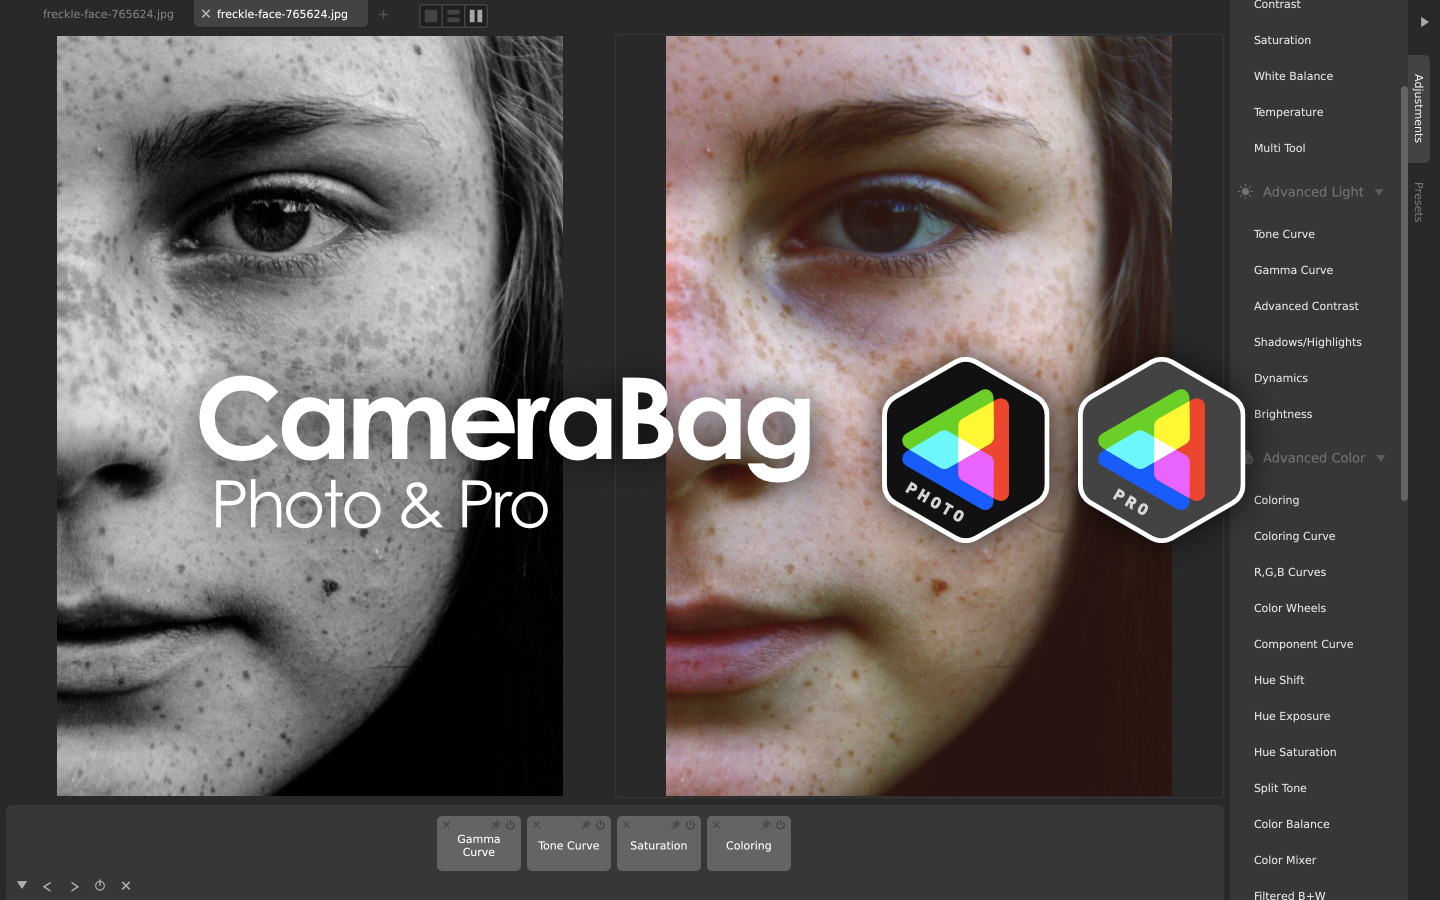 CameraBag - Ultra-intuitive tools for filtering and editing photos